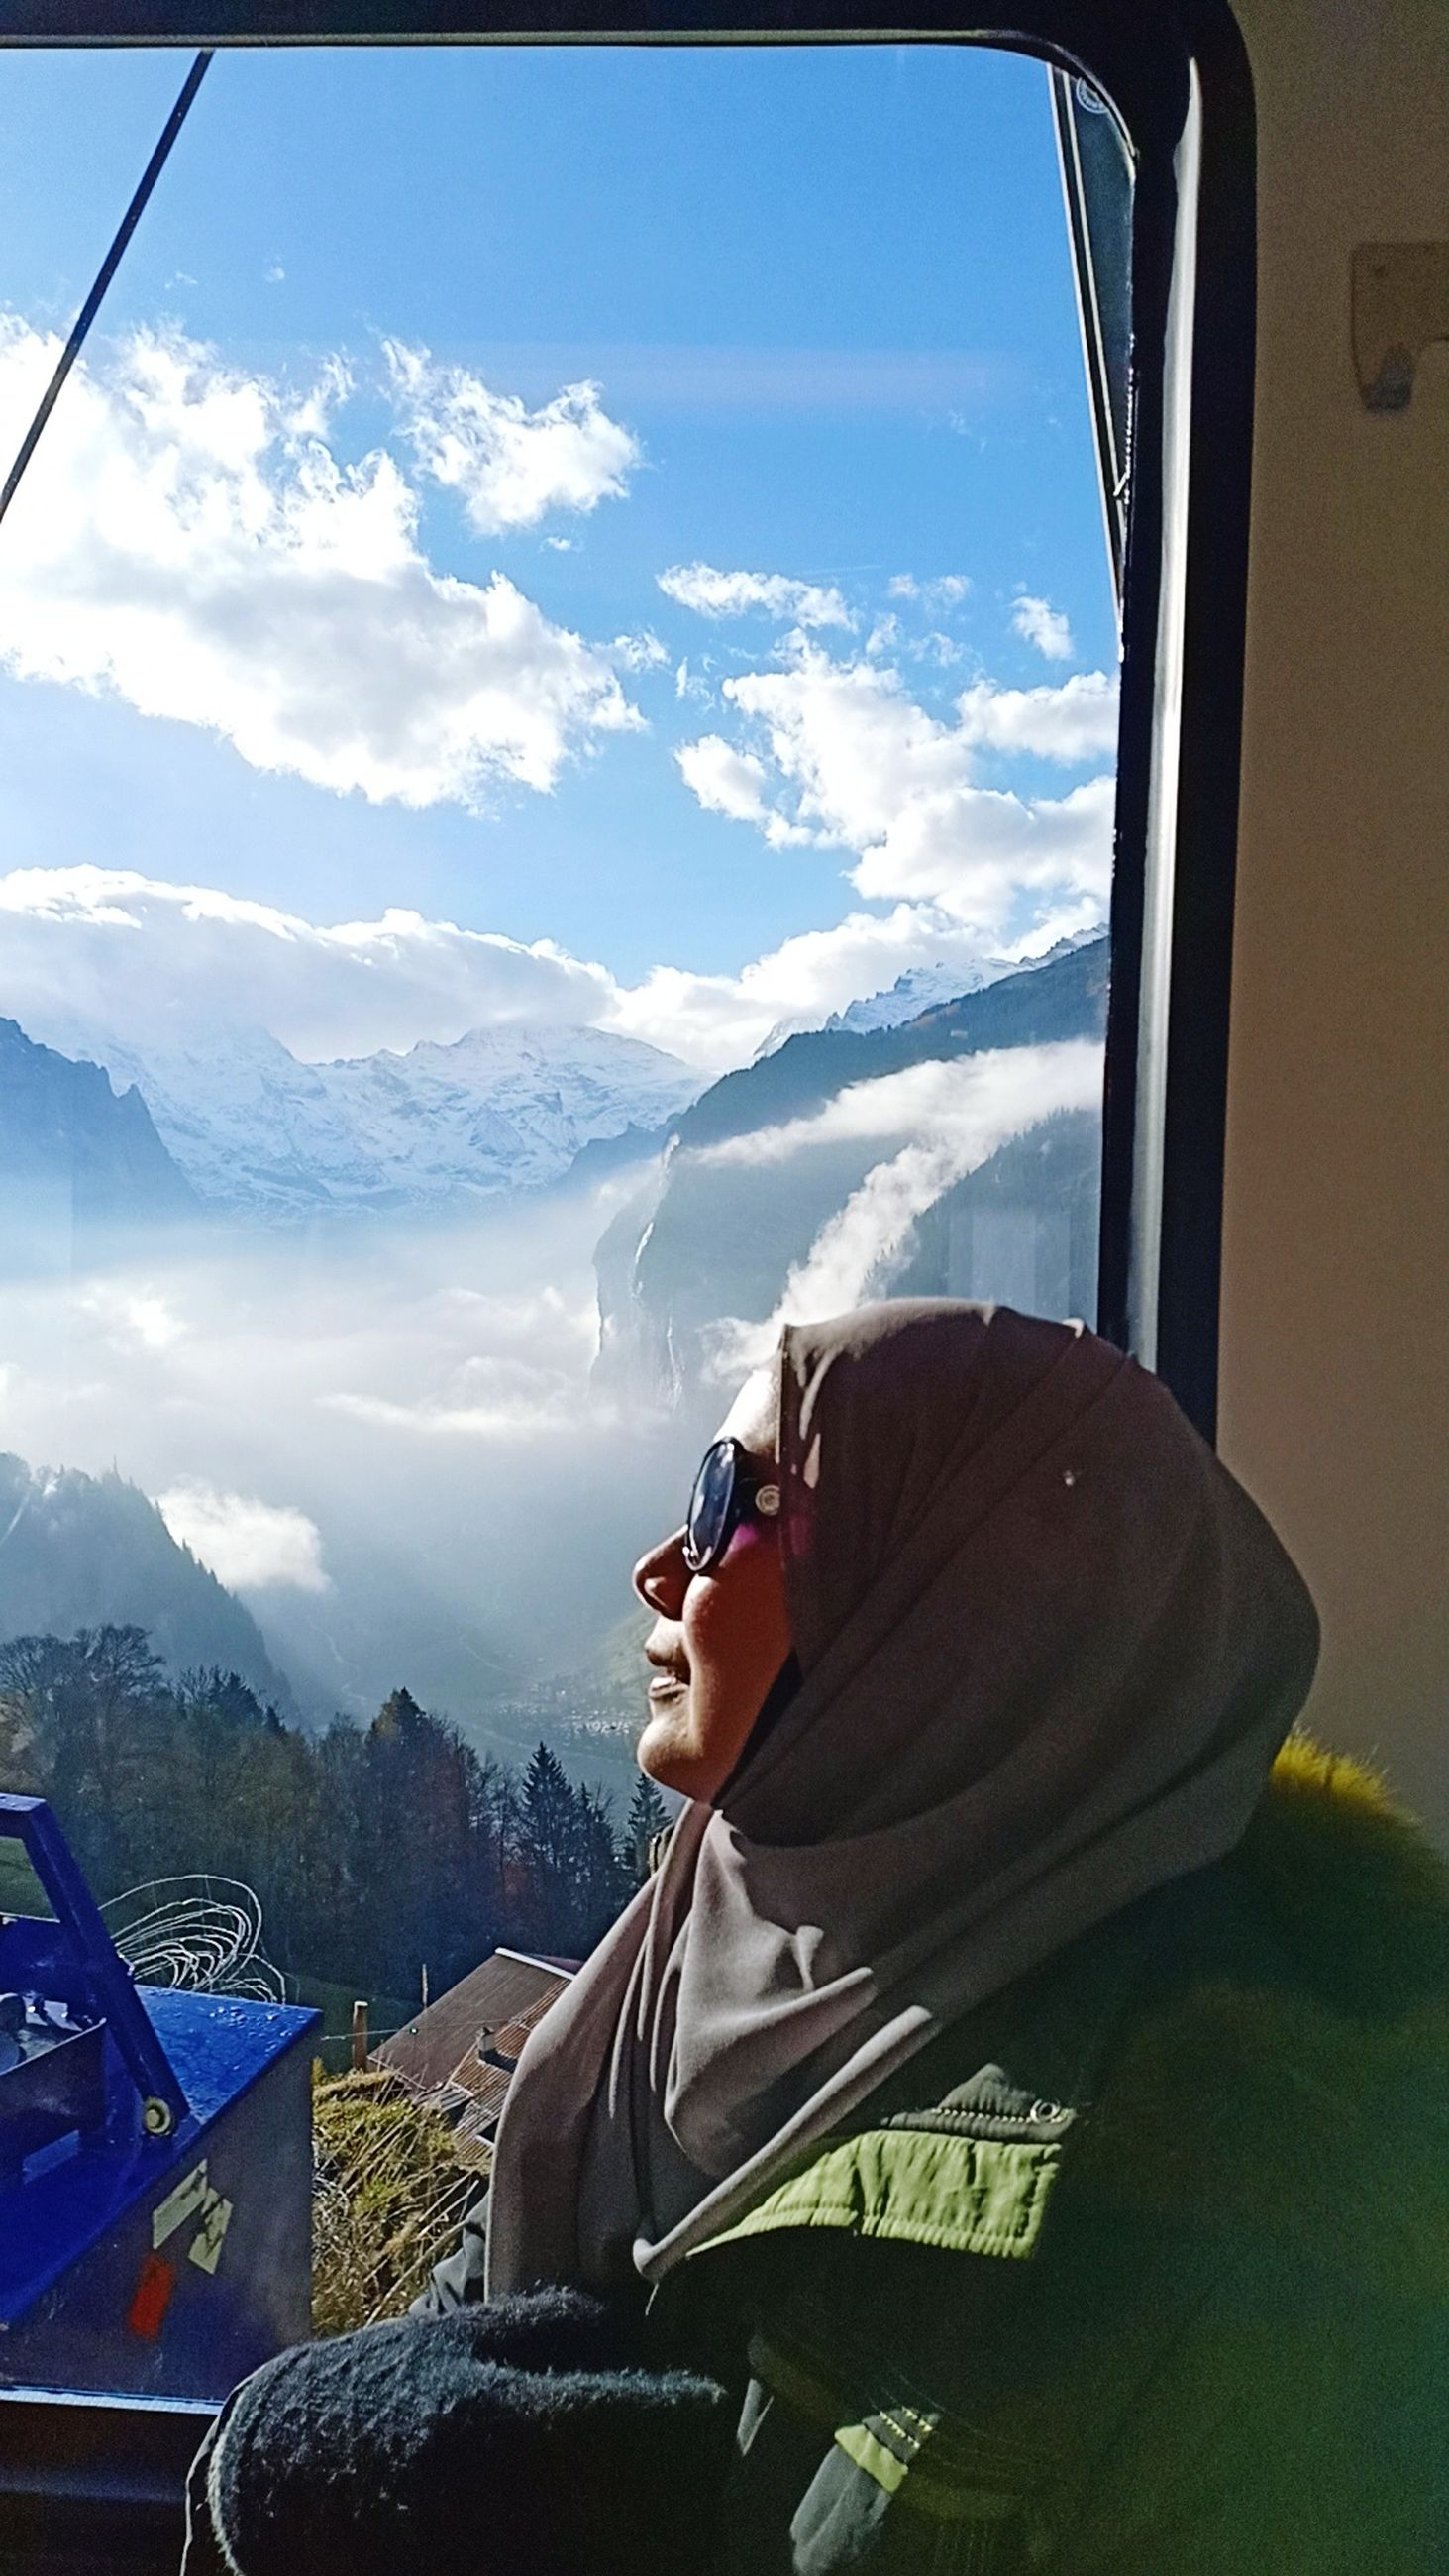 cloud - sky, mountain, one person, leisure activity, sky, real people, lifestyles, day, nature, window, sitting, beauty in nature, mountain range, young adult, mode of transportation, sunlight, transportation, portrait, vehicle interior, outdoors